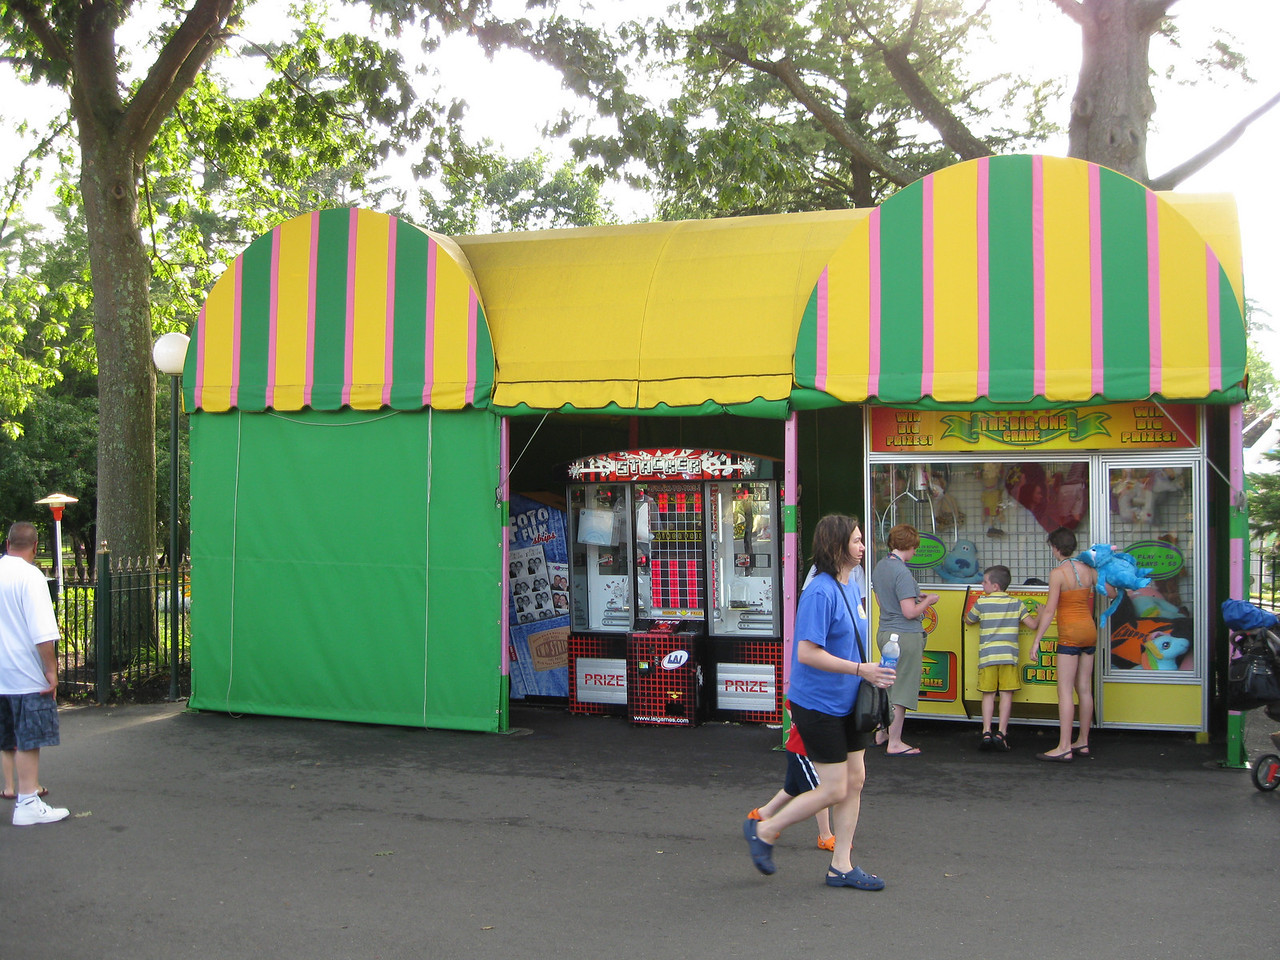 Part of the old park photographer tent was boarded up.